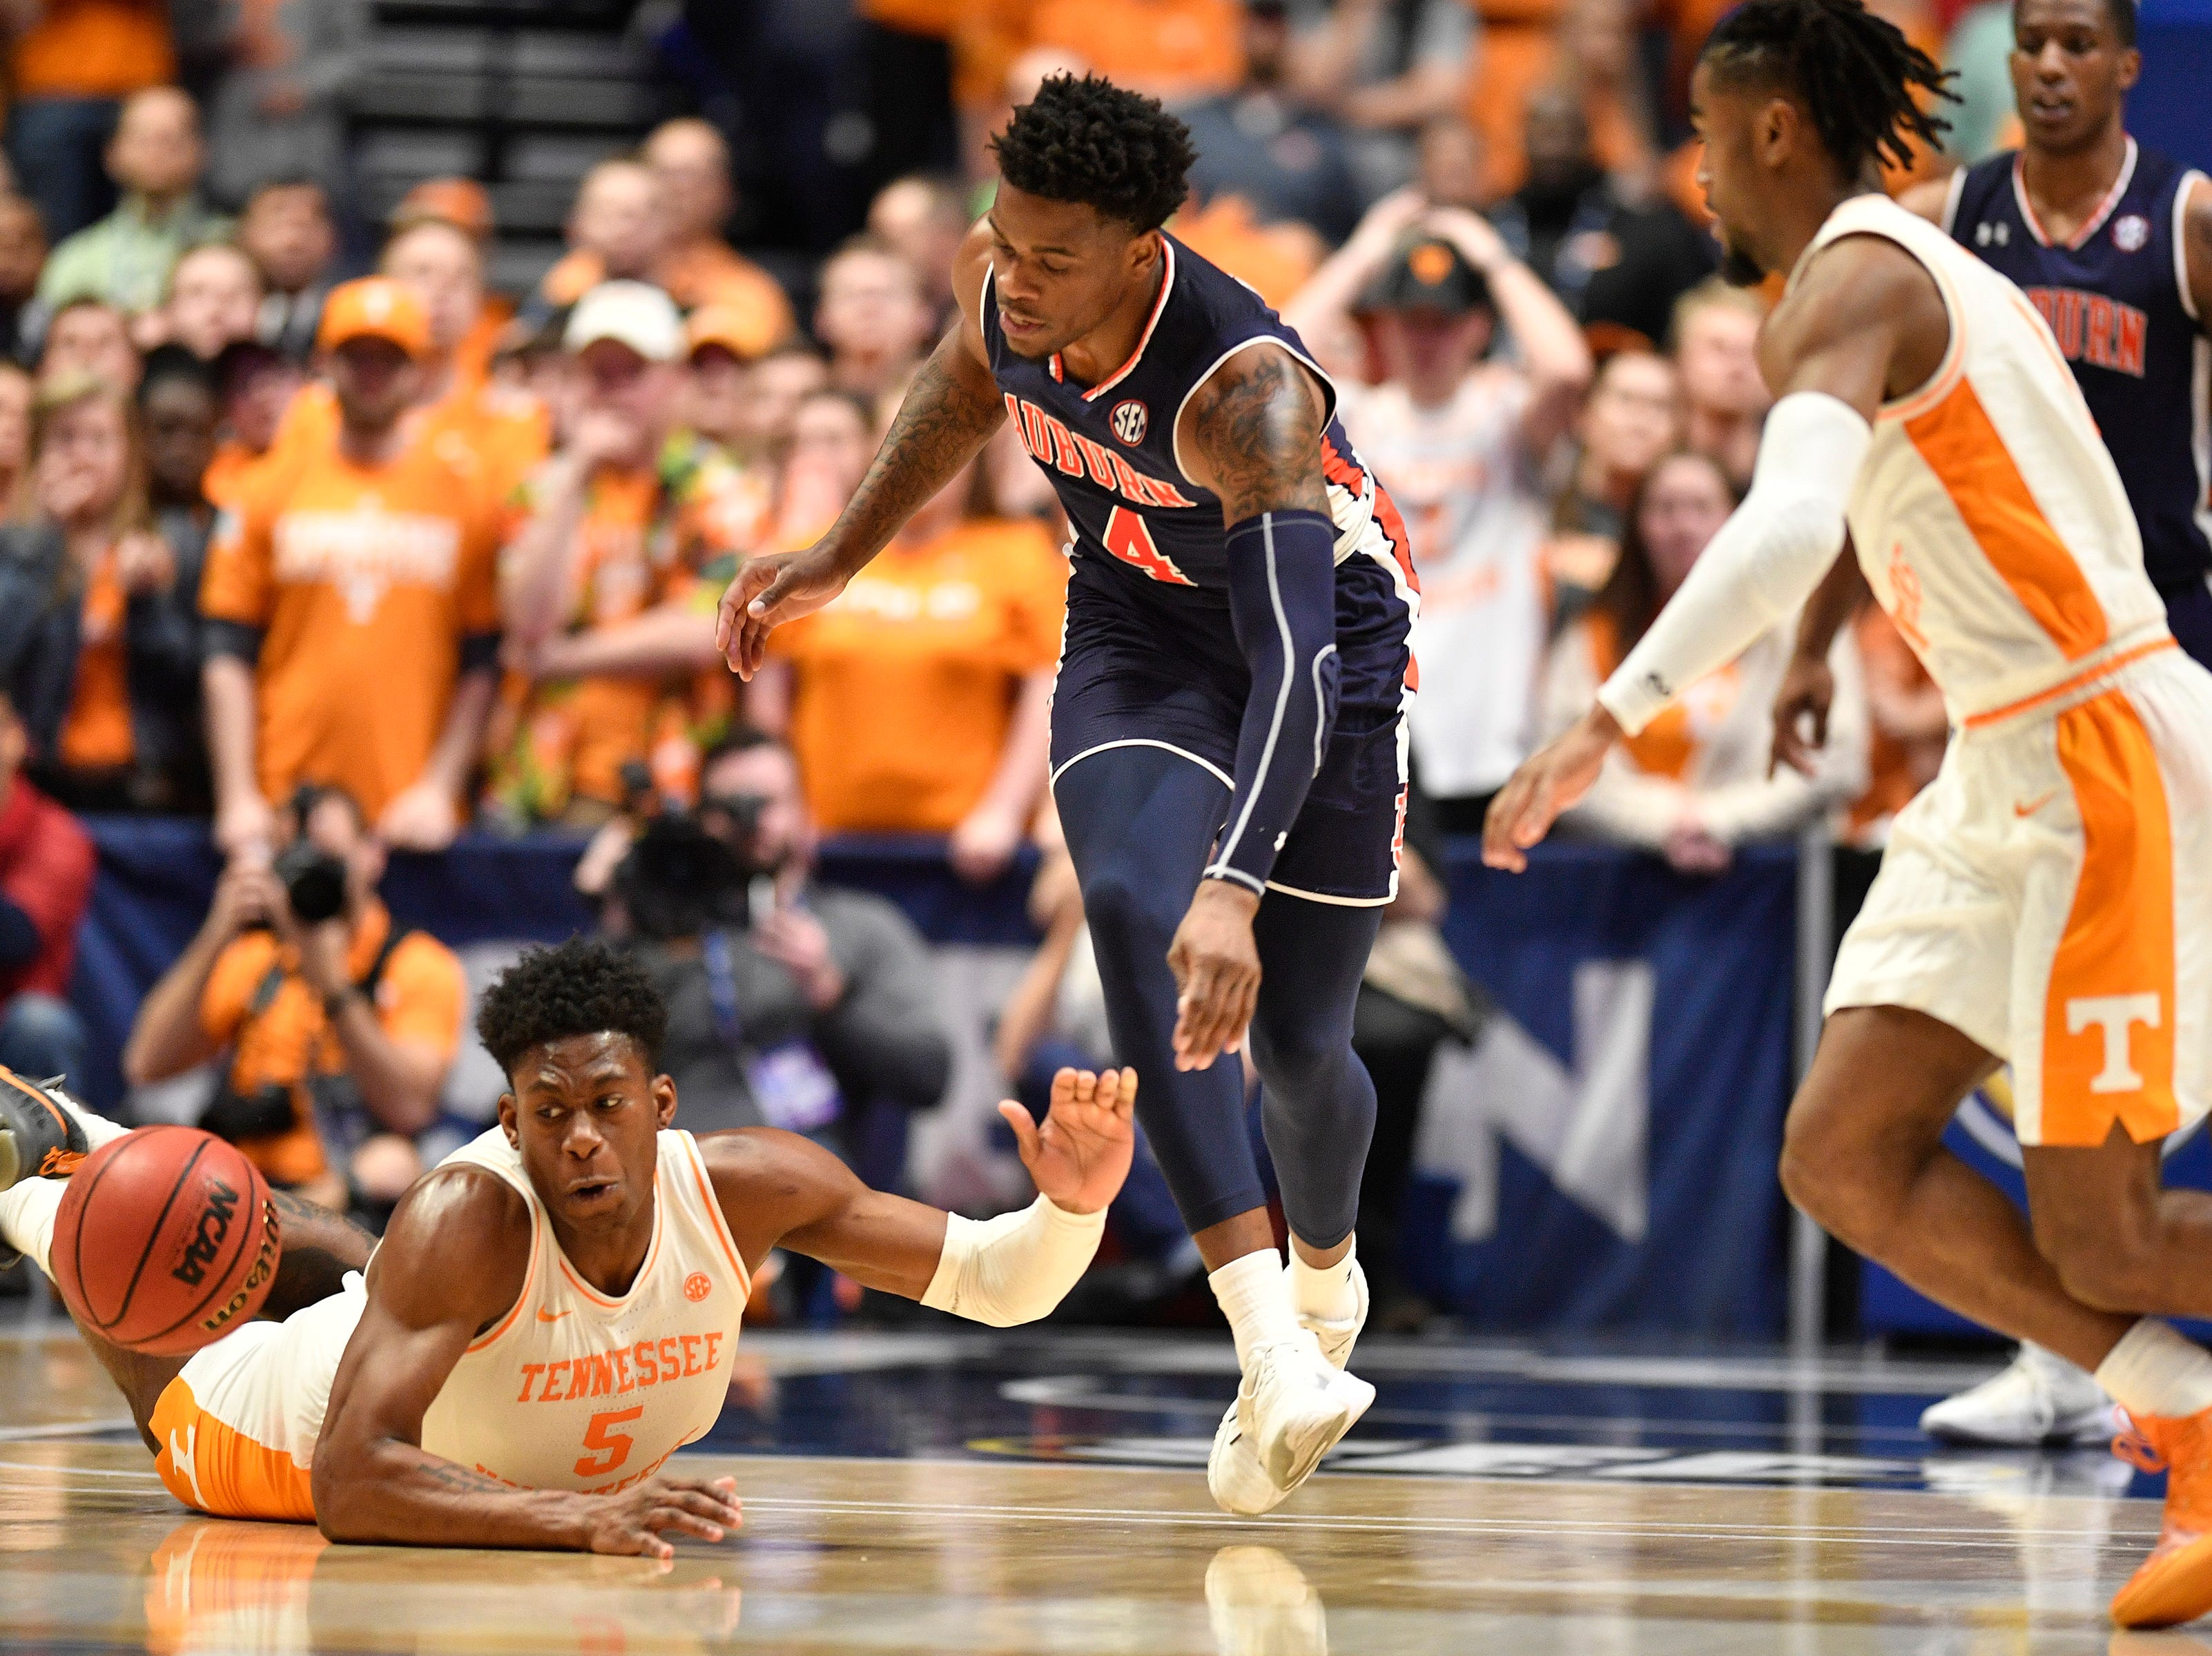 Tennessee guard Admiral Schofield (5), Auburn guard/forward Malik Dunbar (4) and Tennessee guard Jordan Bone (0) battle for a loose ball during the second half of the SEC Men's Basketball Tournament championship game at Bridgestone Arena in Nashville, Tenn., Sunday, March 17, 2019.